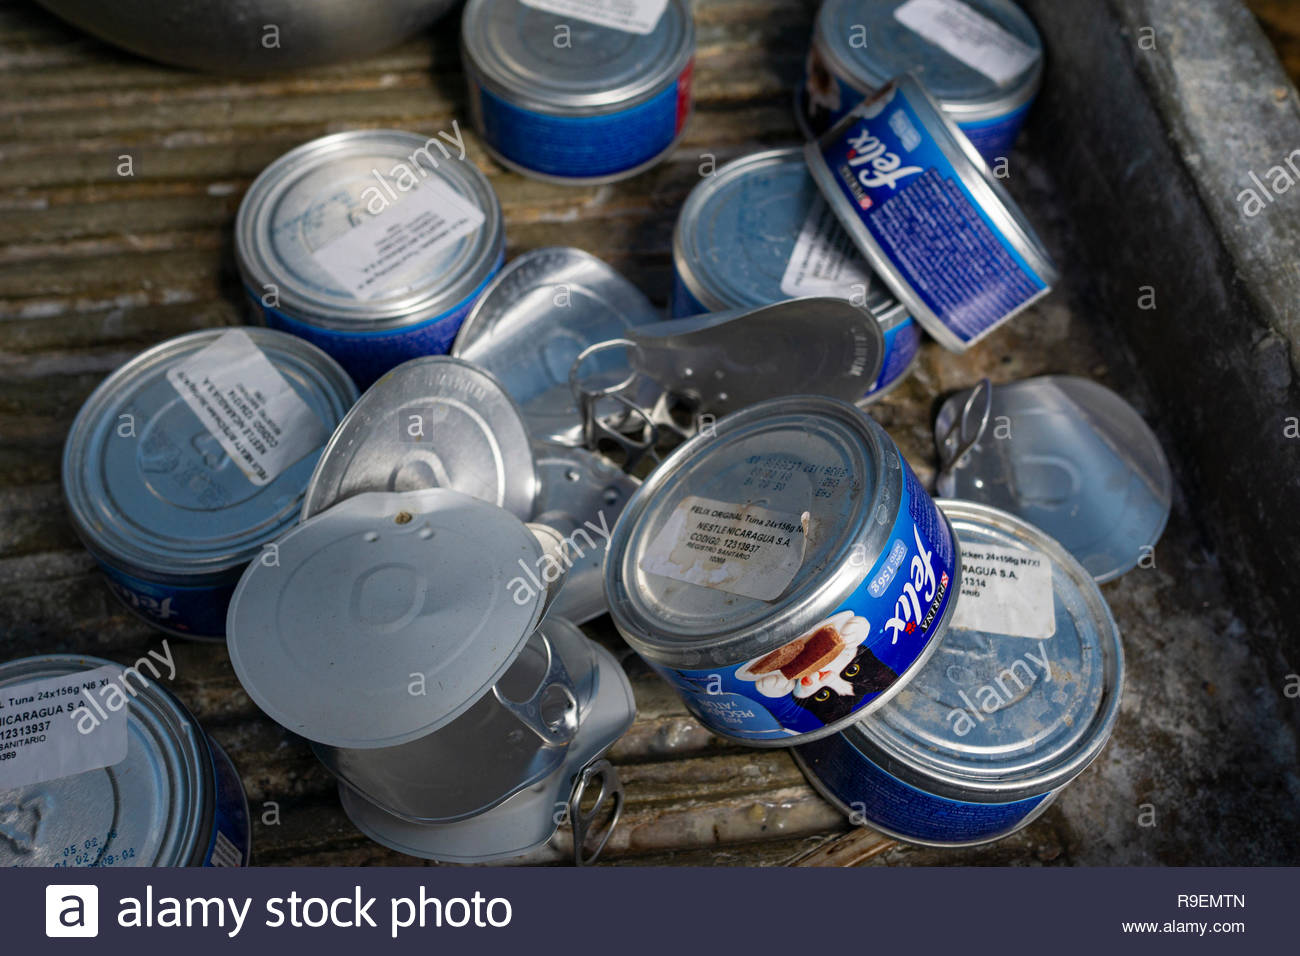 Cans for recycling are piled together before bagging. Stock Photo